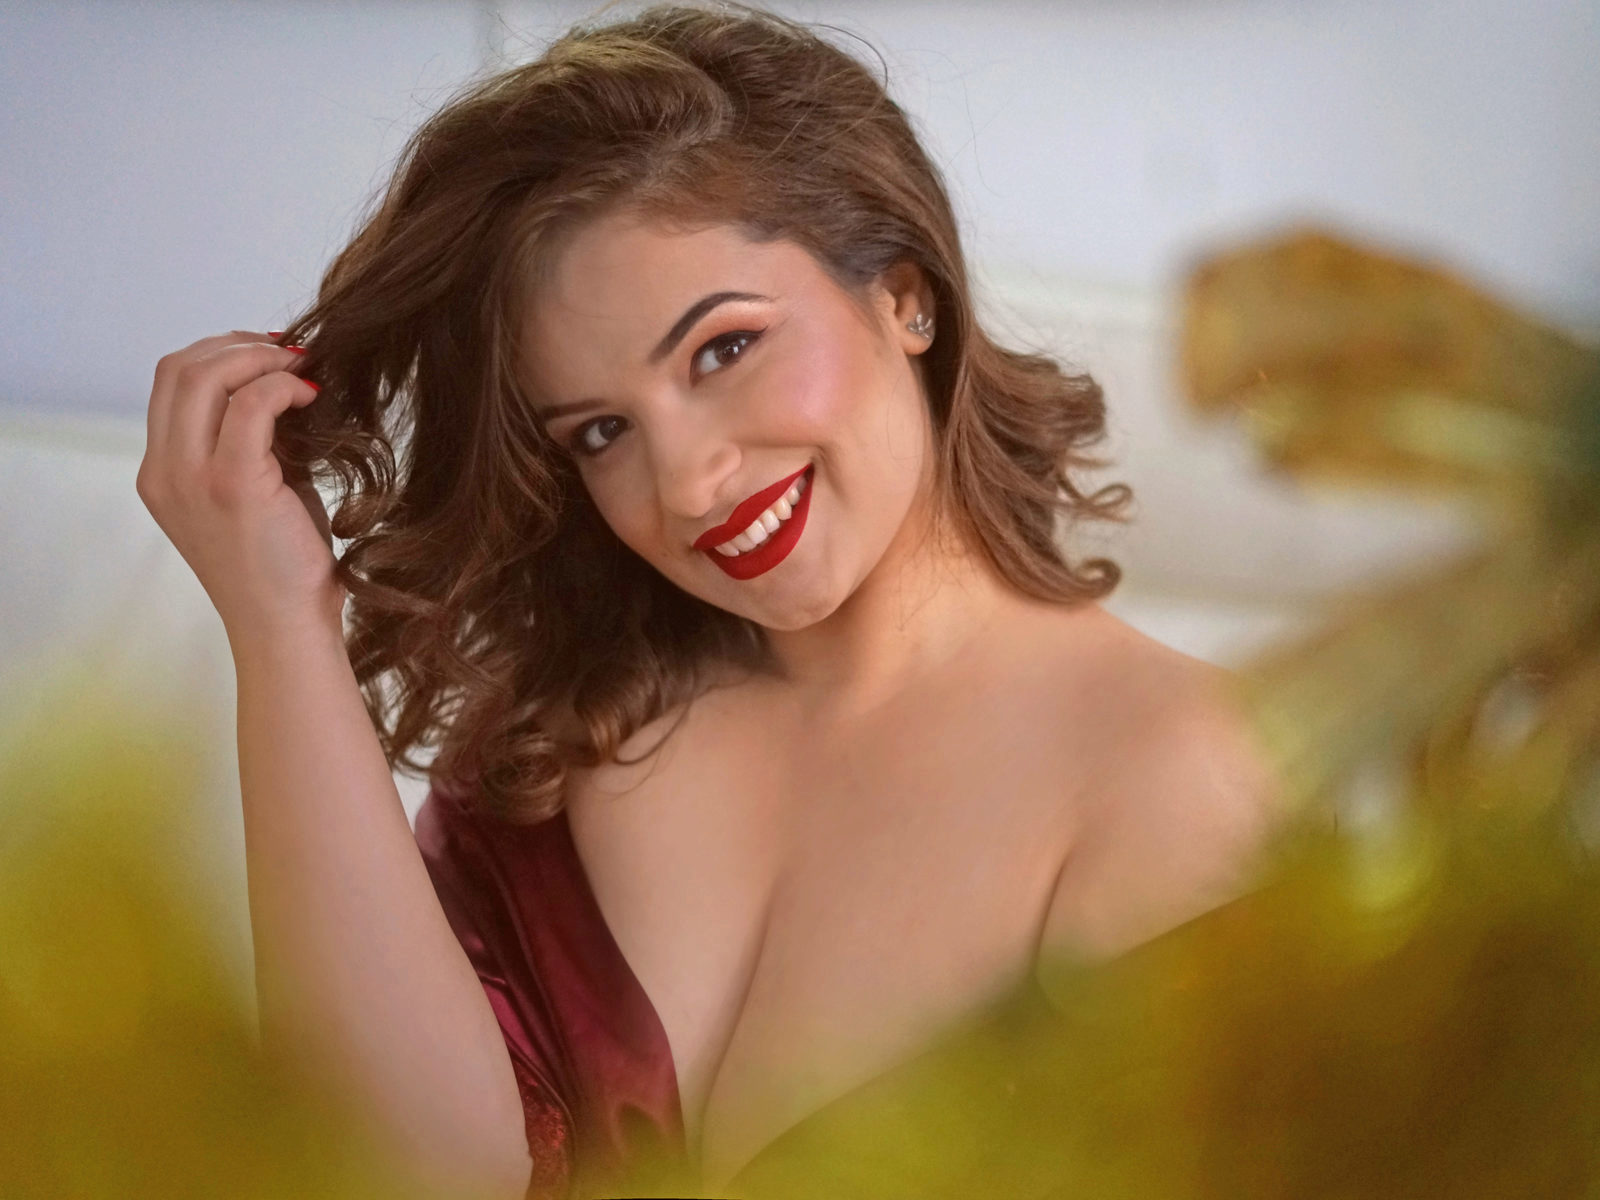 Webcam model Lady Channel from WebPowerCam